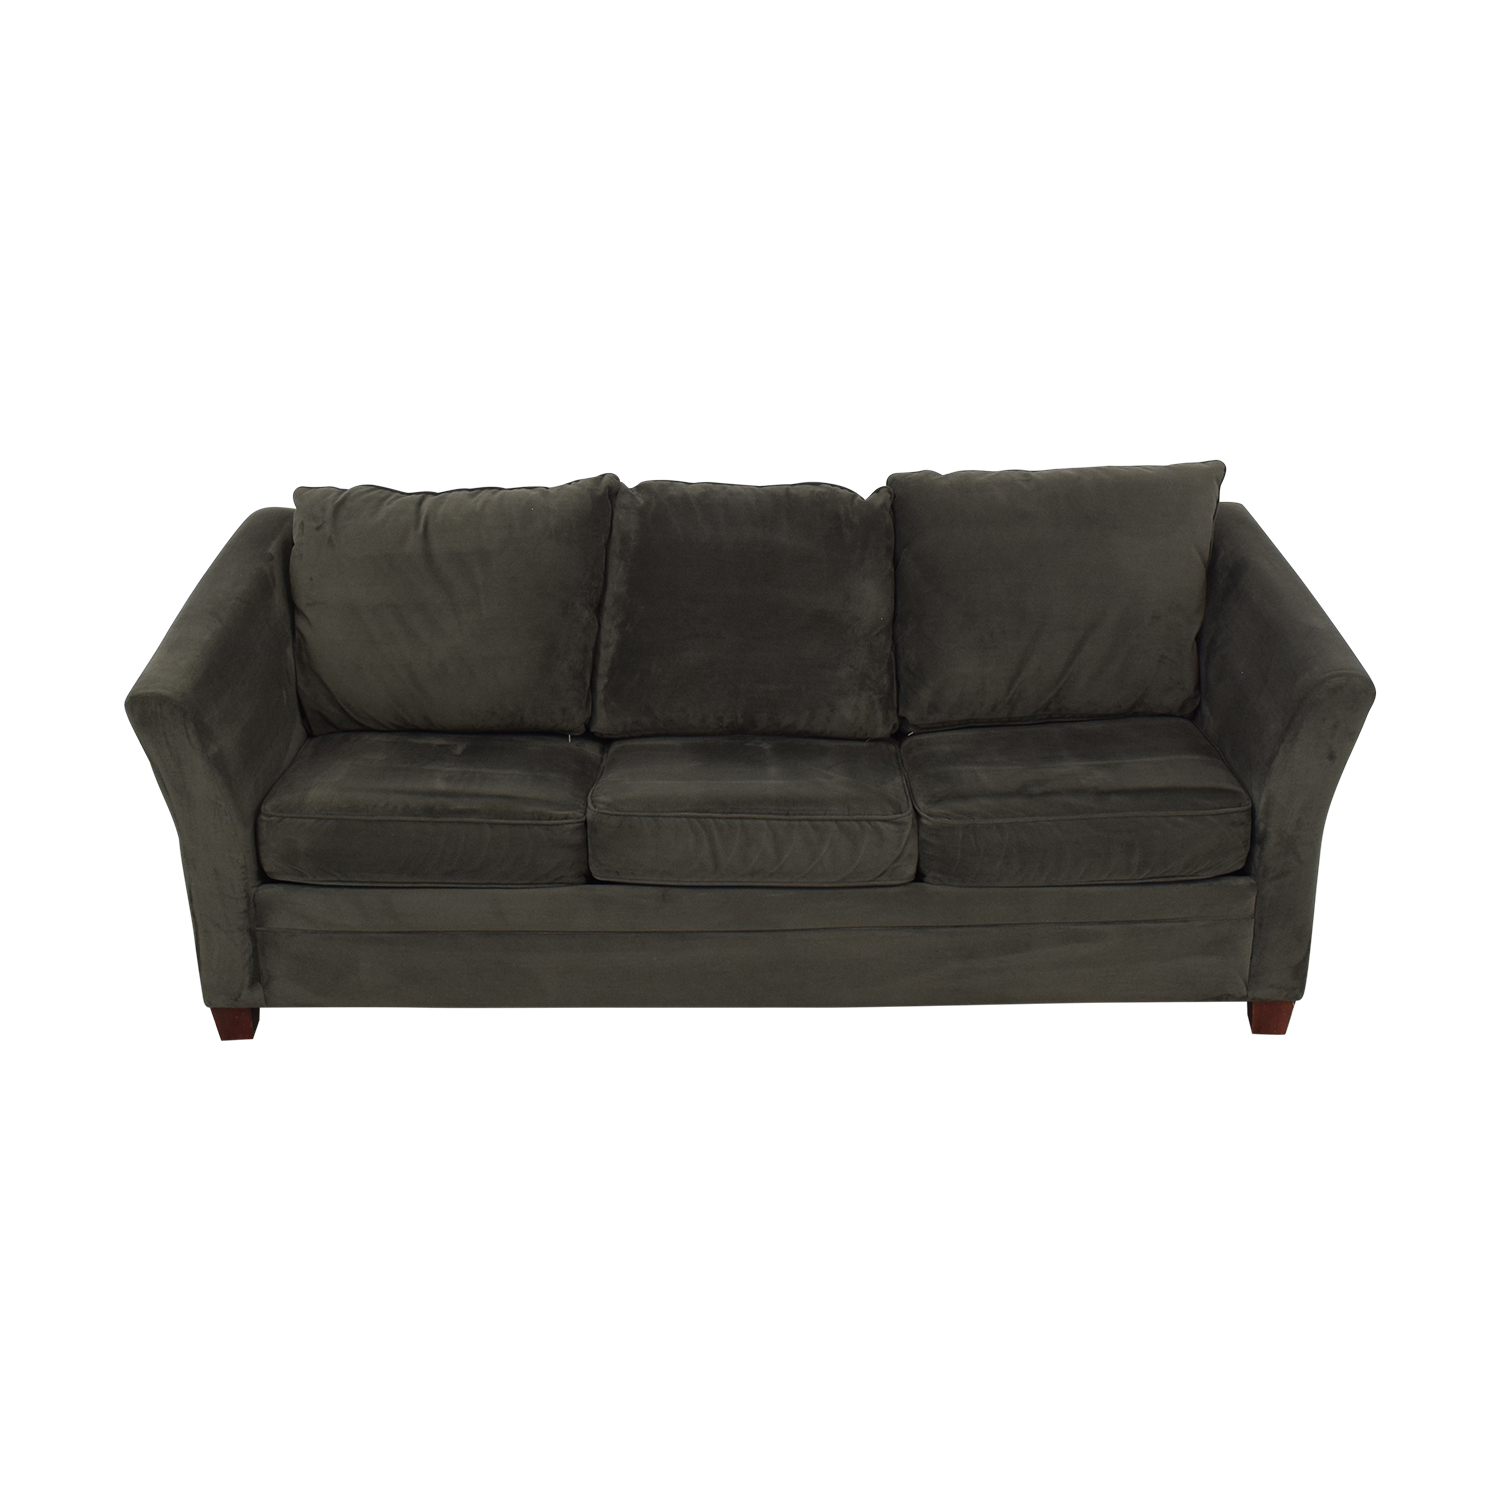 Klaussner Klaussner Taylor Queen Sleeper Sofa second hand